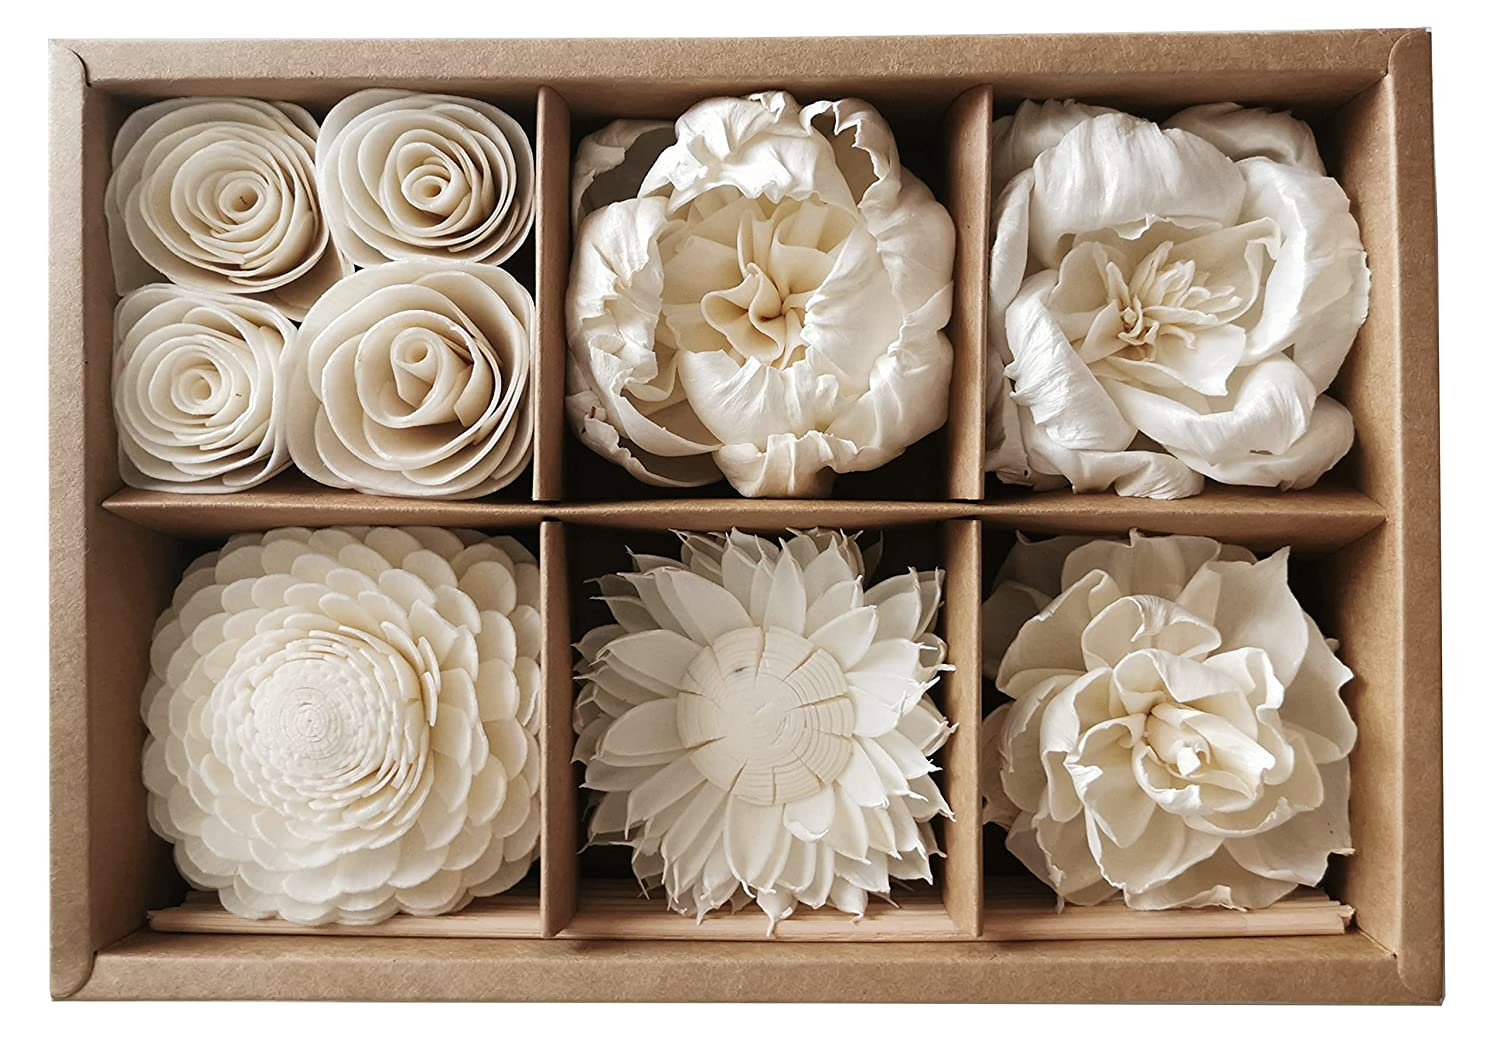 Reed Oakland Mall Diffuser 6 Mix Sola Flower with for Box Home Fr Cotton Wick Free Shipping New